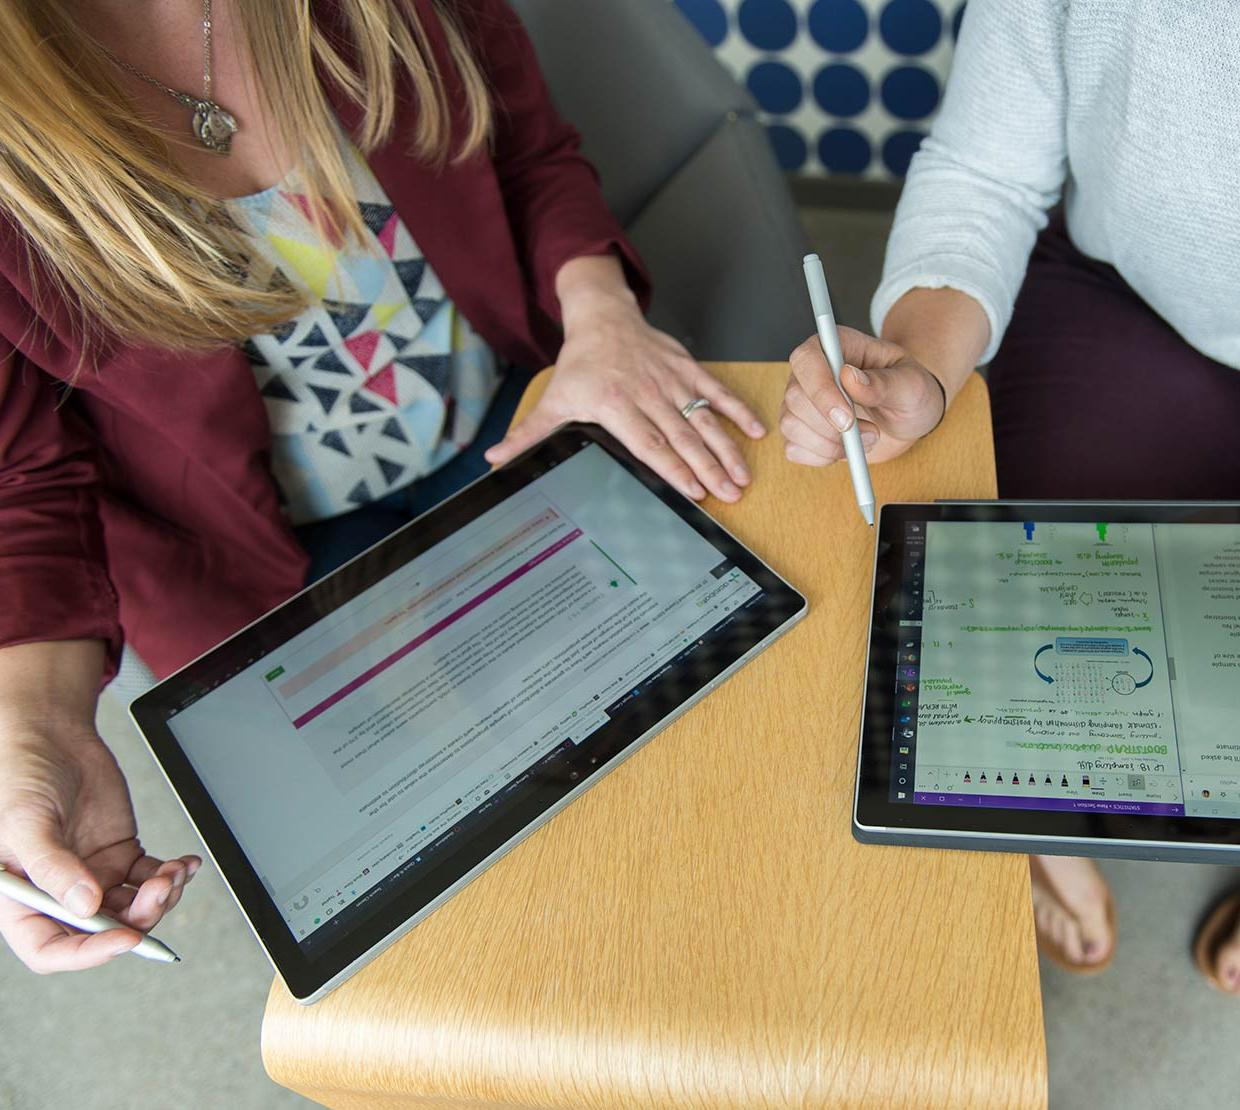 Two women working on iPads in the Learning Innovation Center